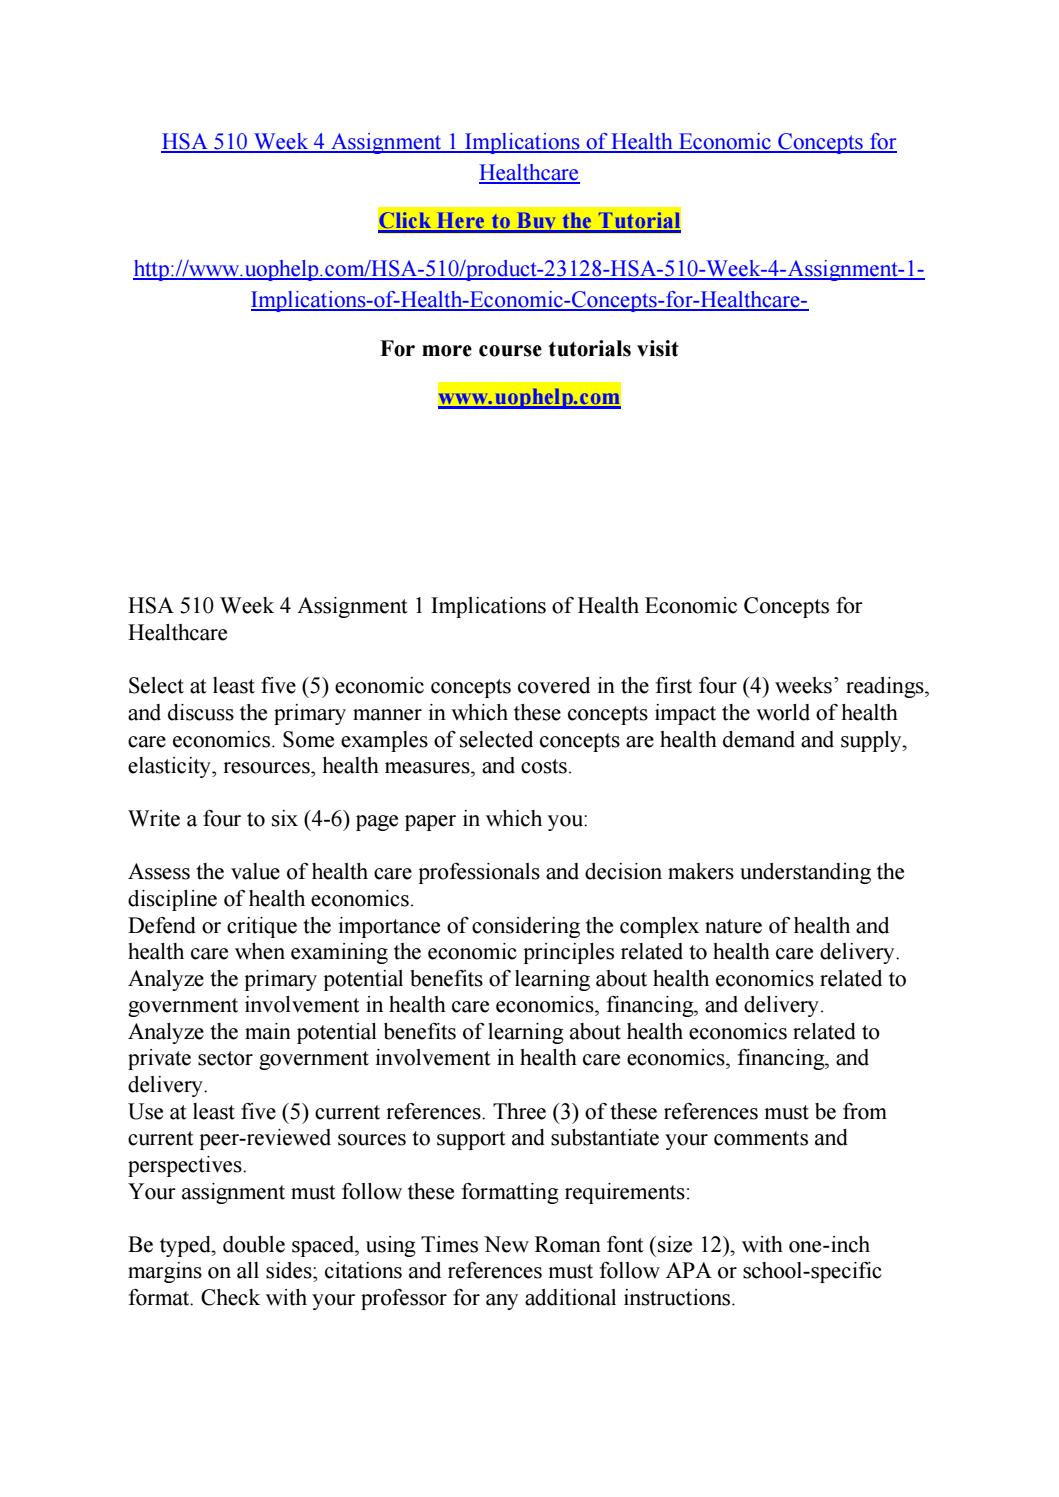 hsa 510 week 4 assignment 1 implications of health economic concepts